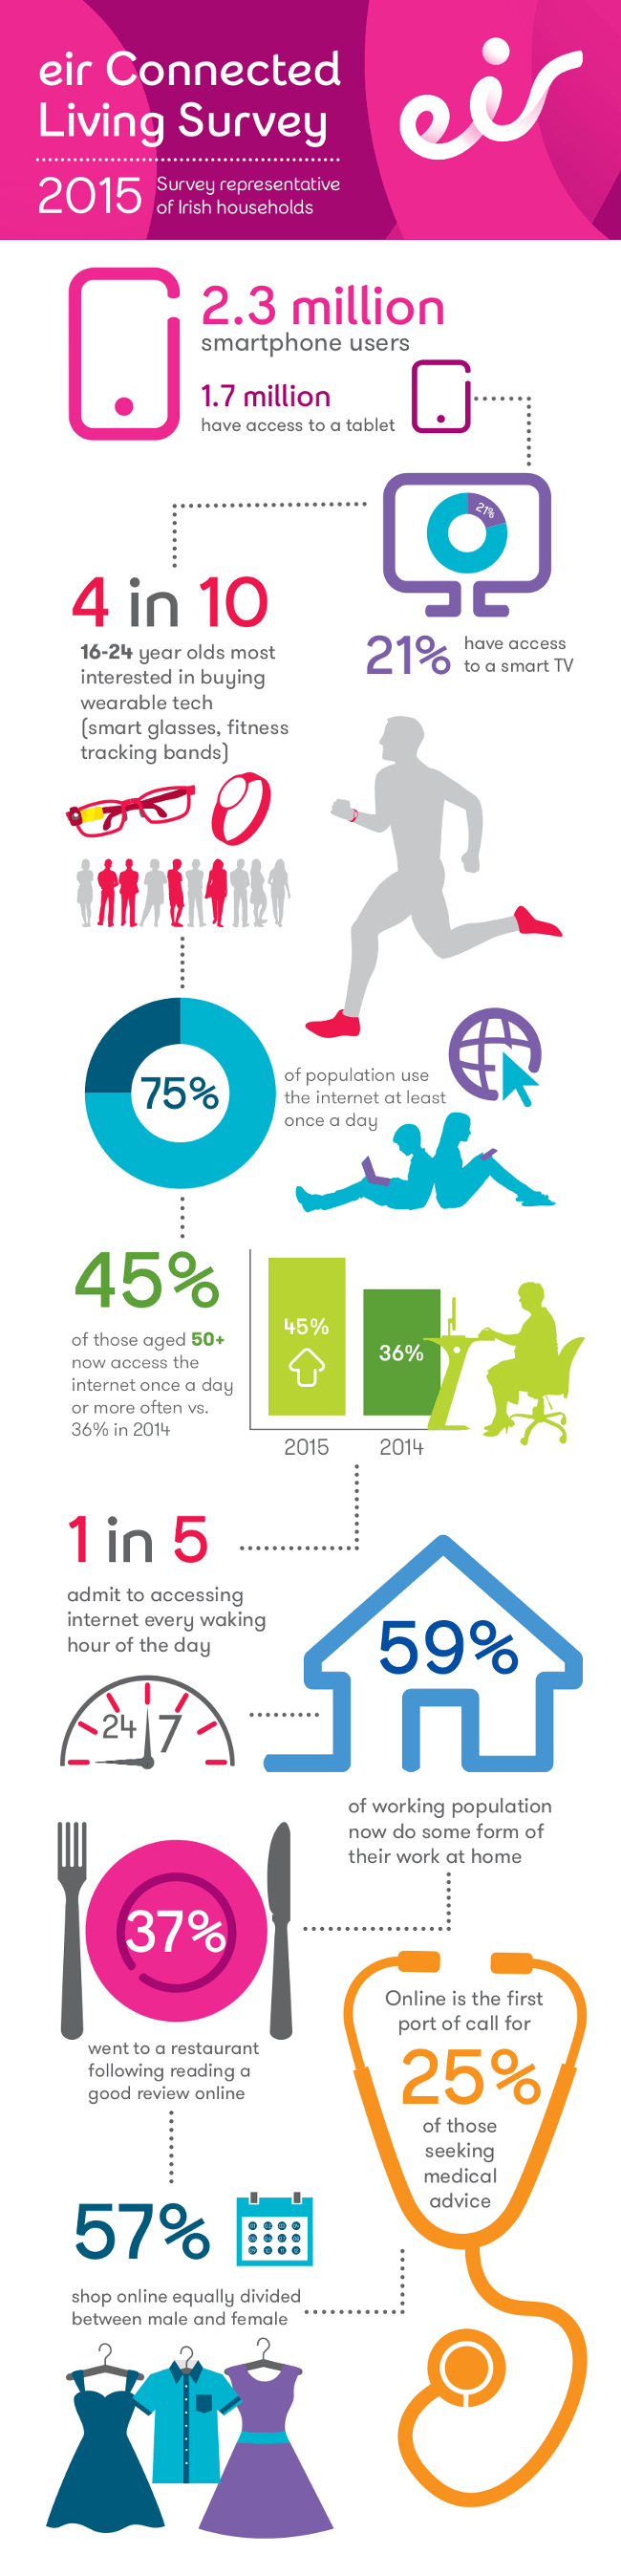 eir-irish-infographic-2015